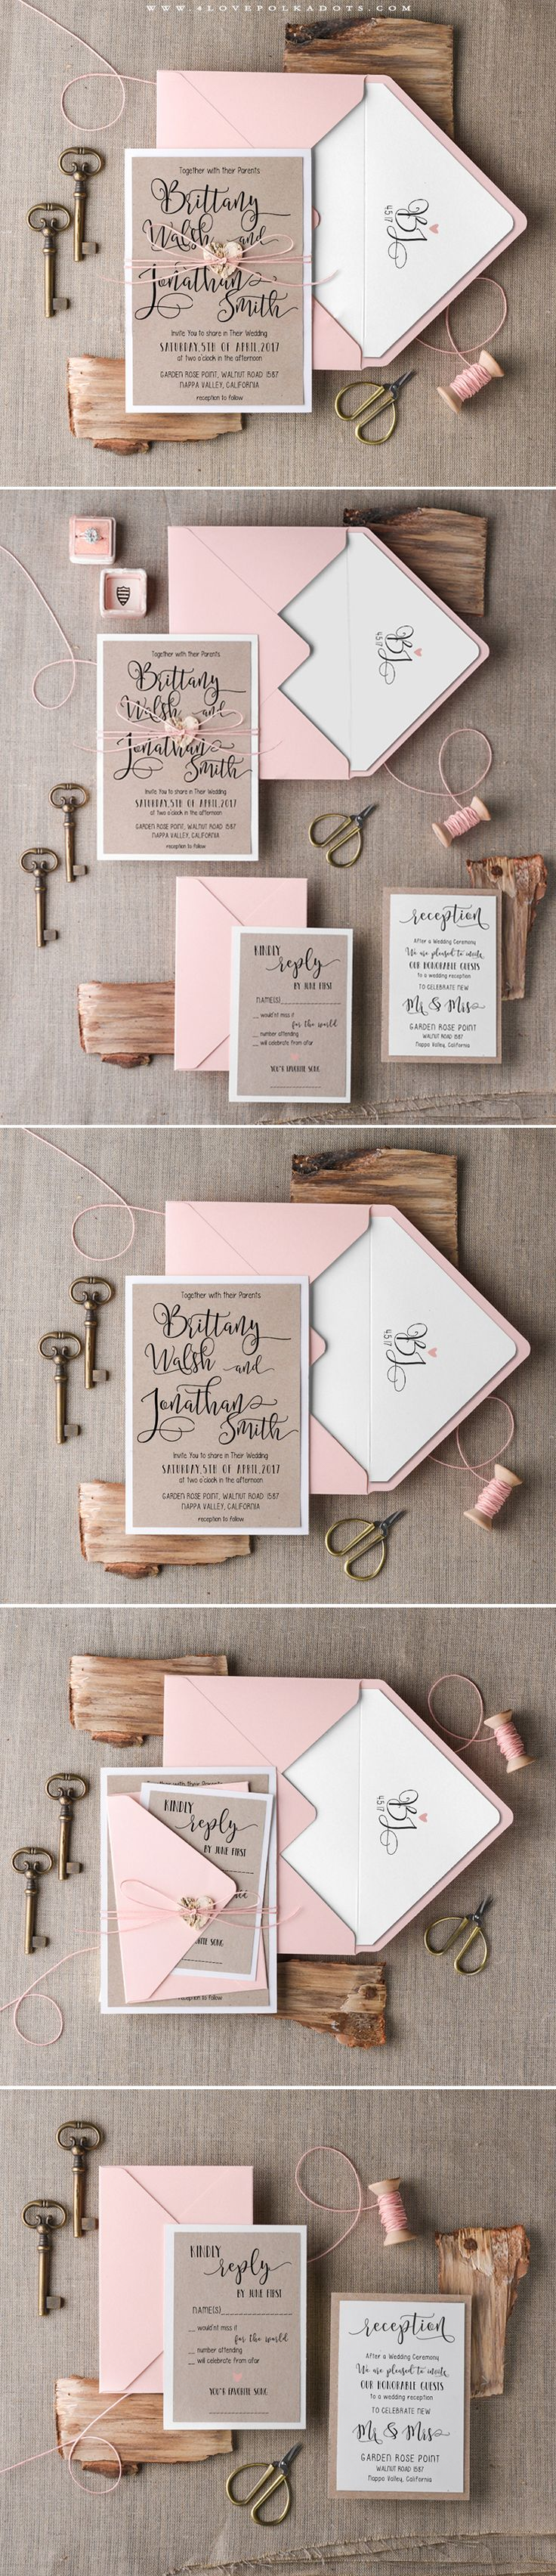 Calligraphy Wedding Invitations #pink #eco #handmade #weddingideas…